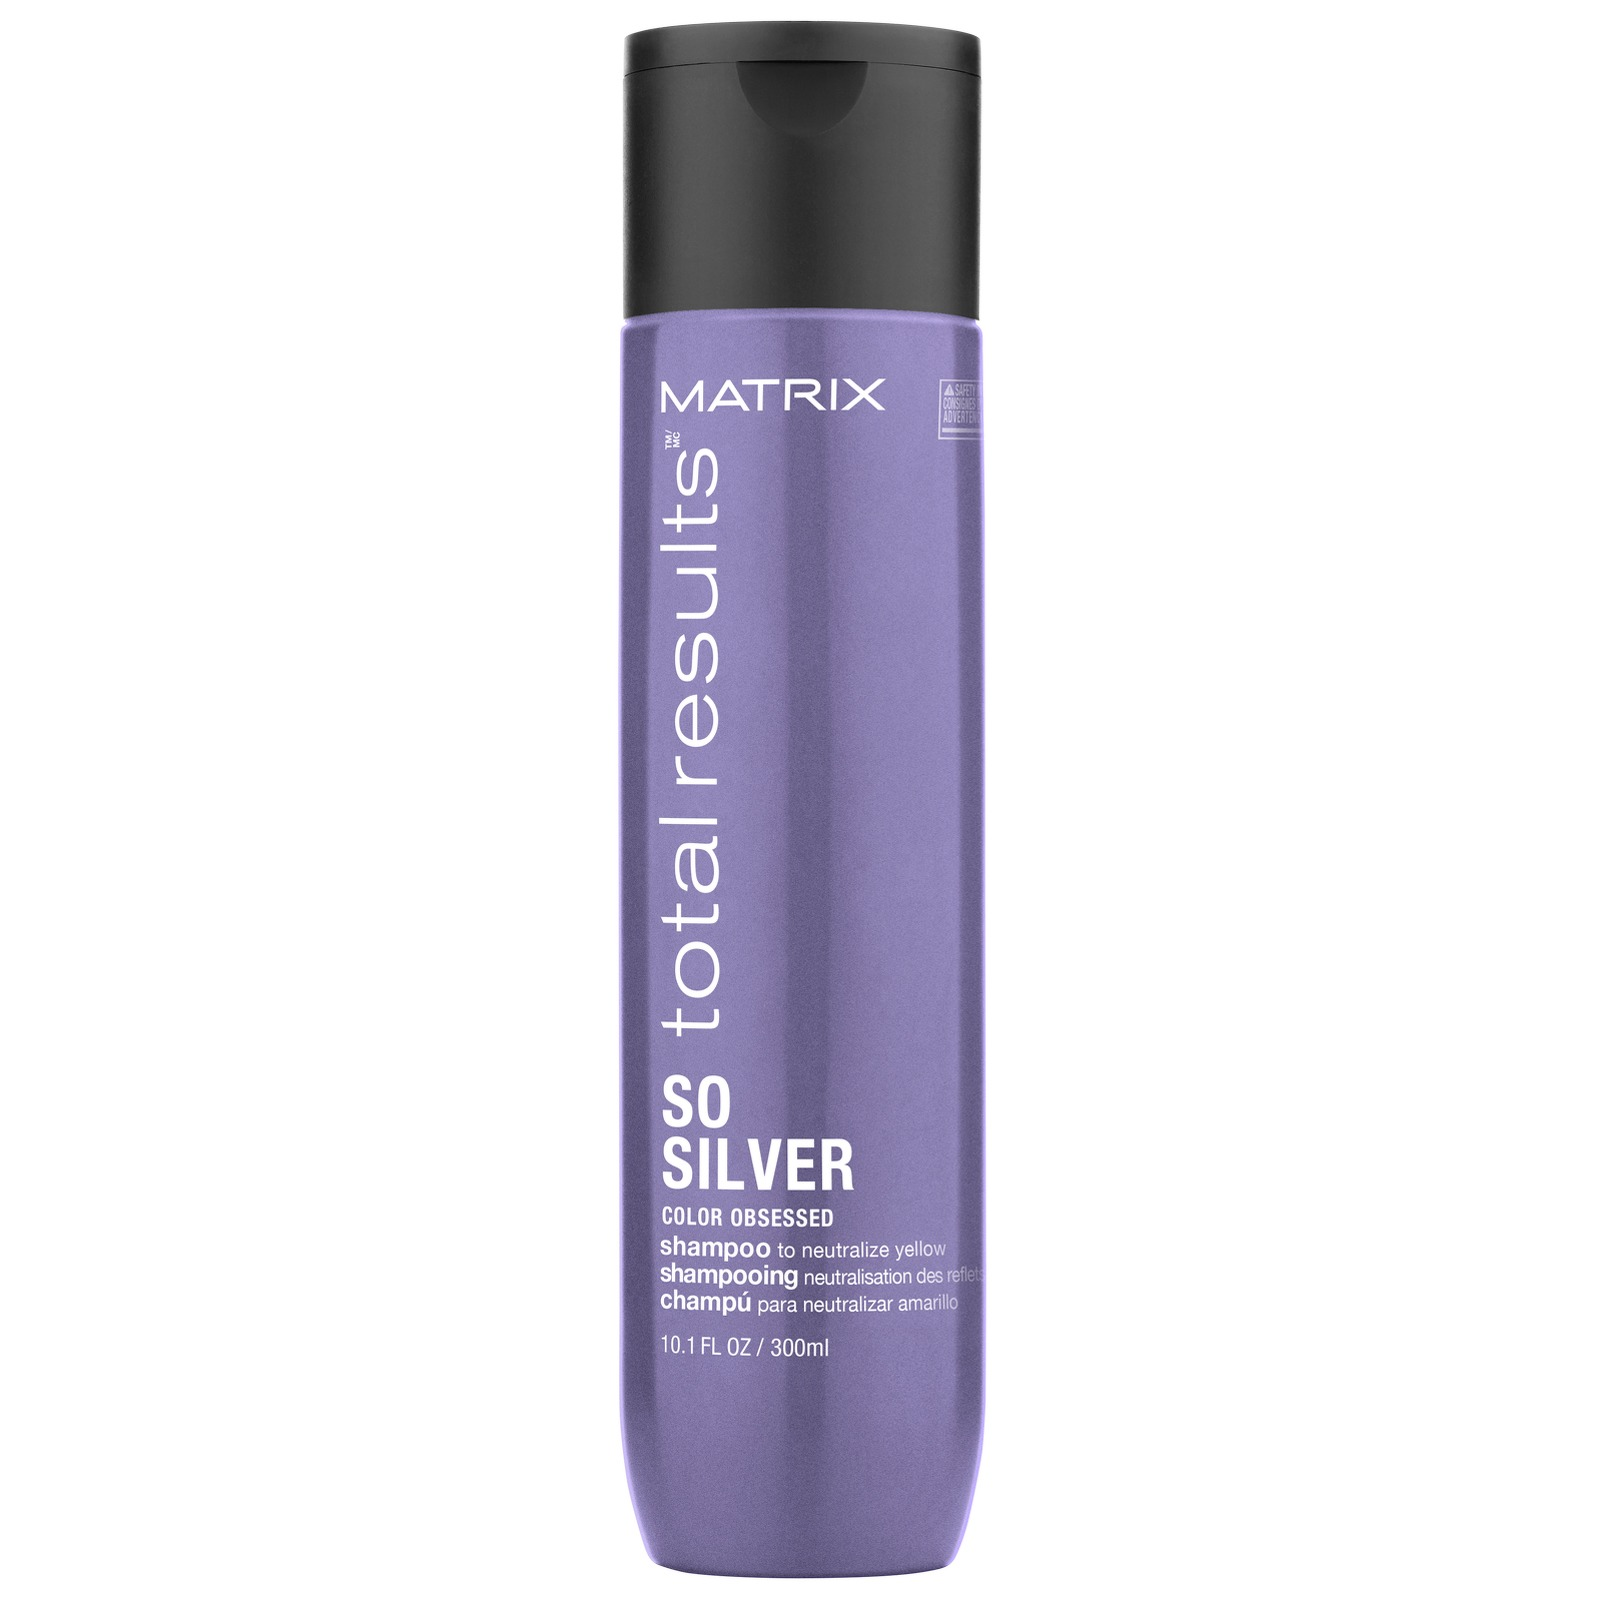 Matrix Total Results Color Obsessed So Silver Shampoo to Rid Yellow Tone in Blonde Hair 300ml